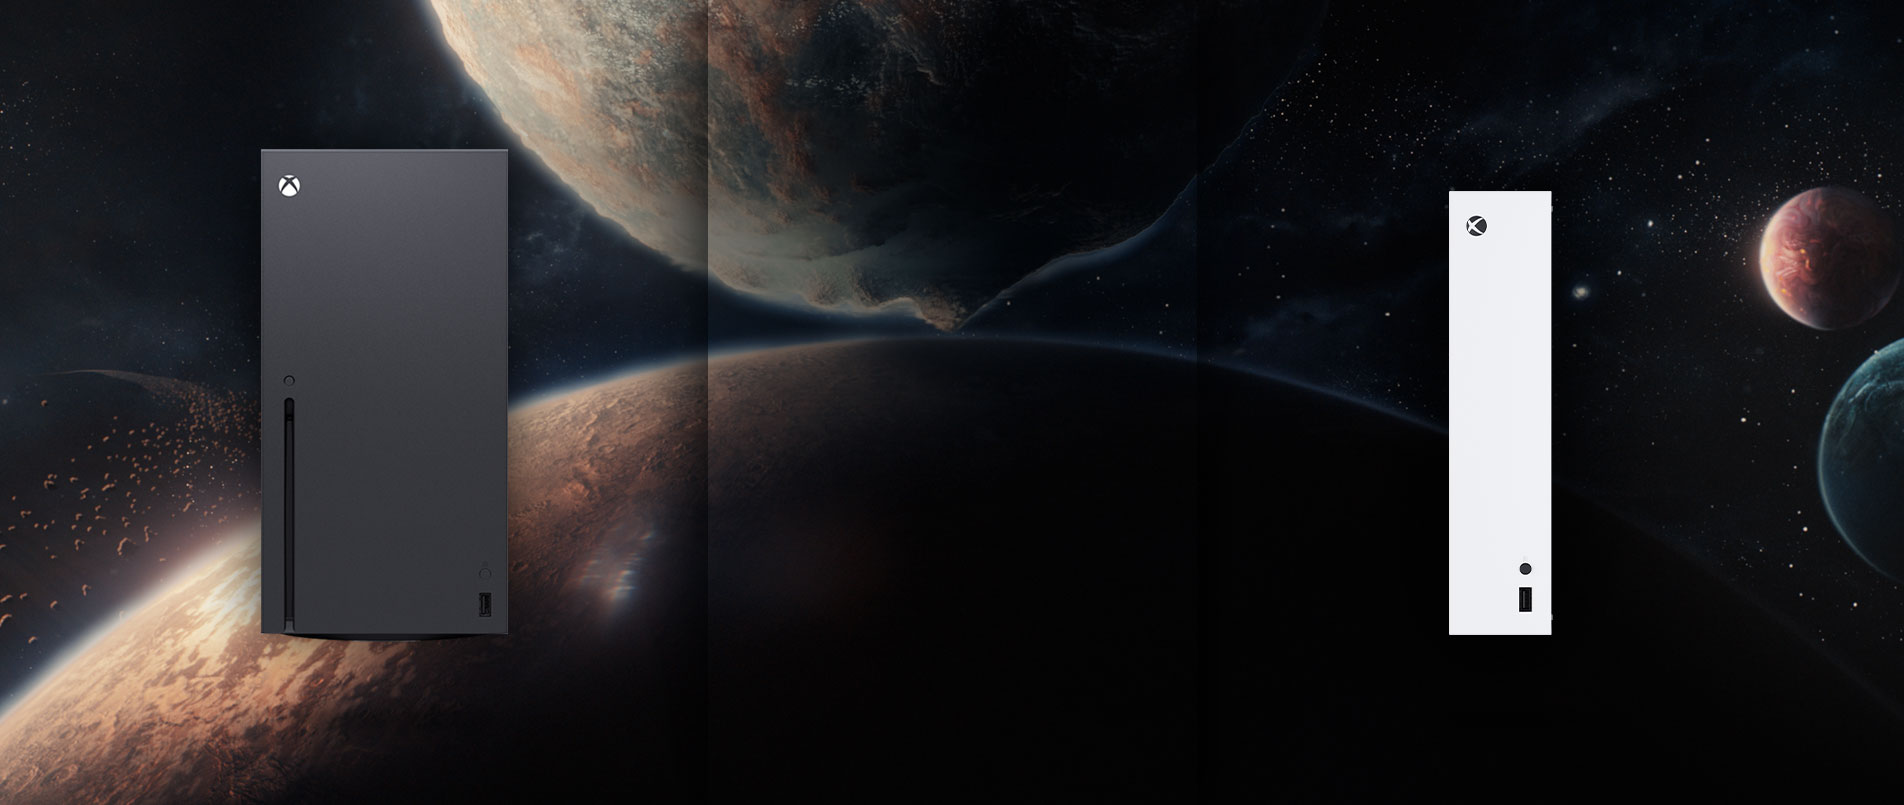 Xbox Series X and Xbox Series S consoles with two planets in the background